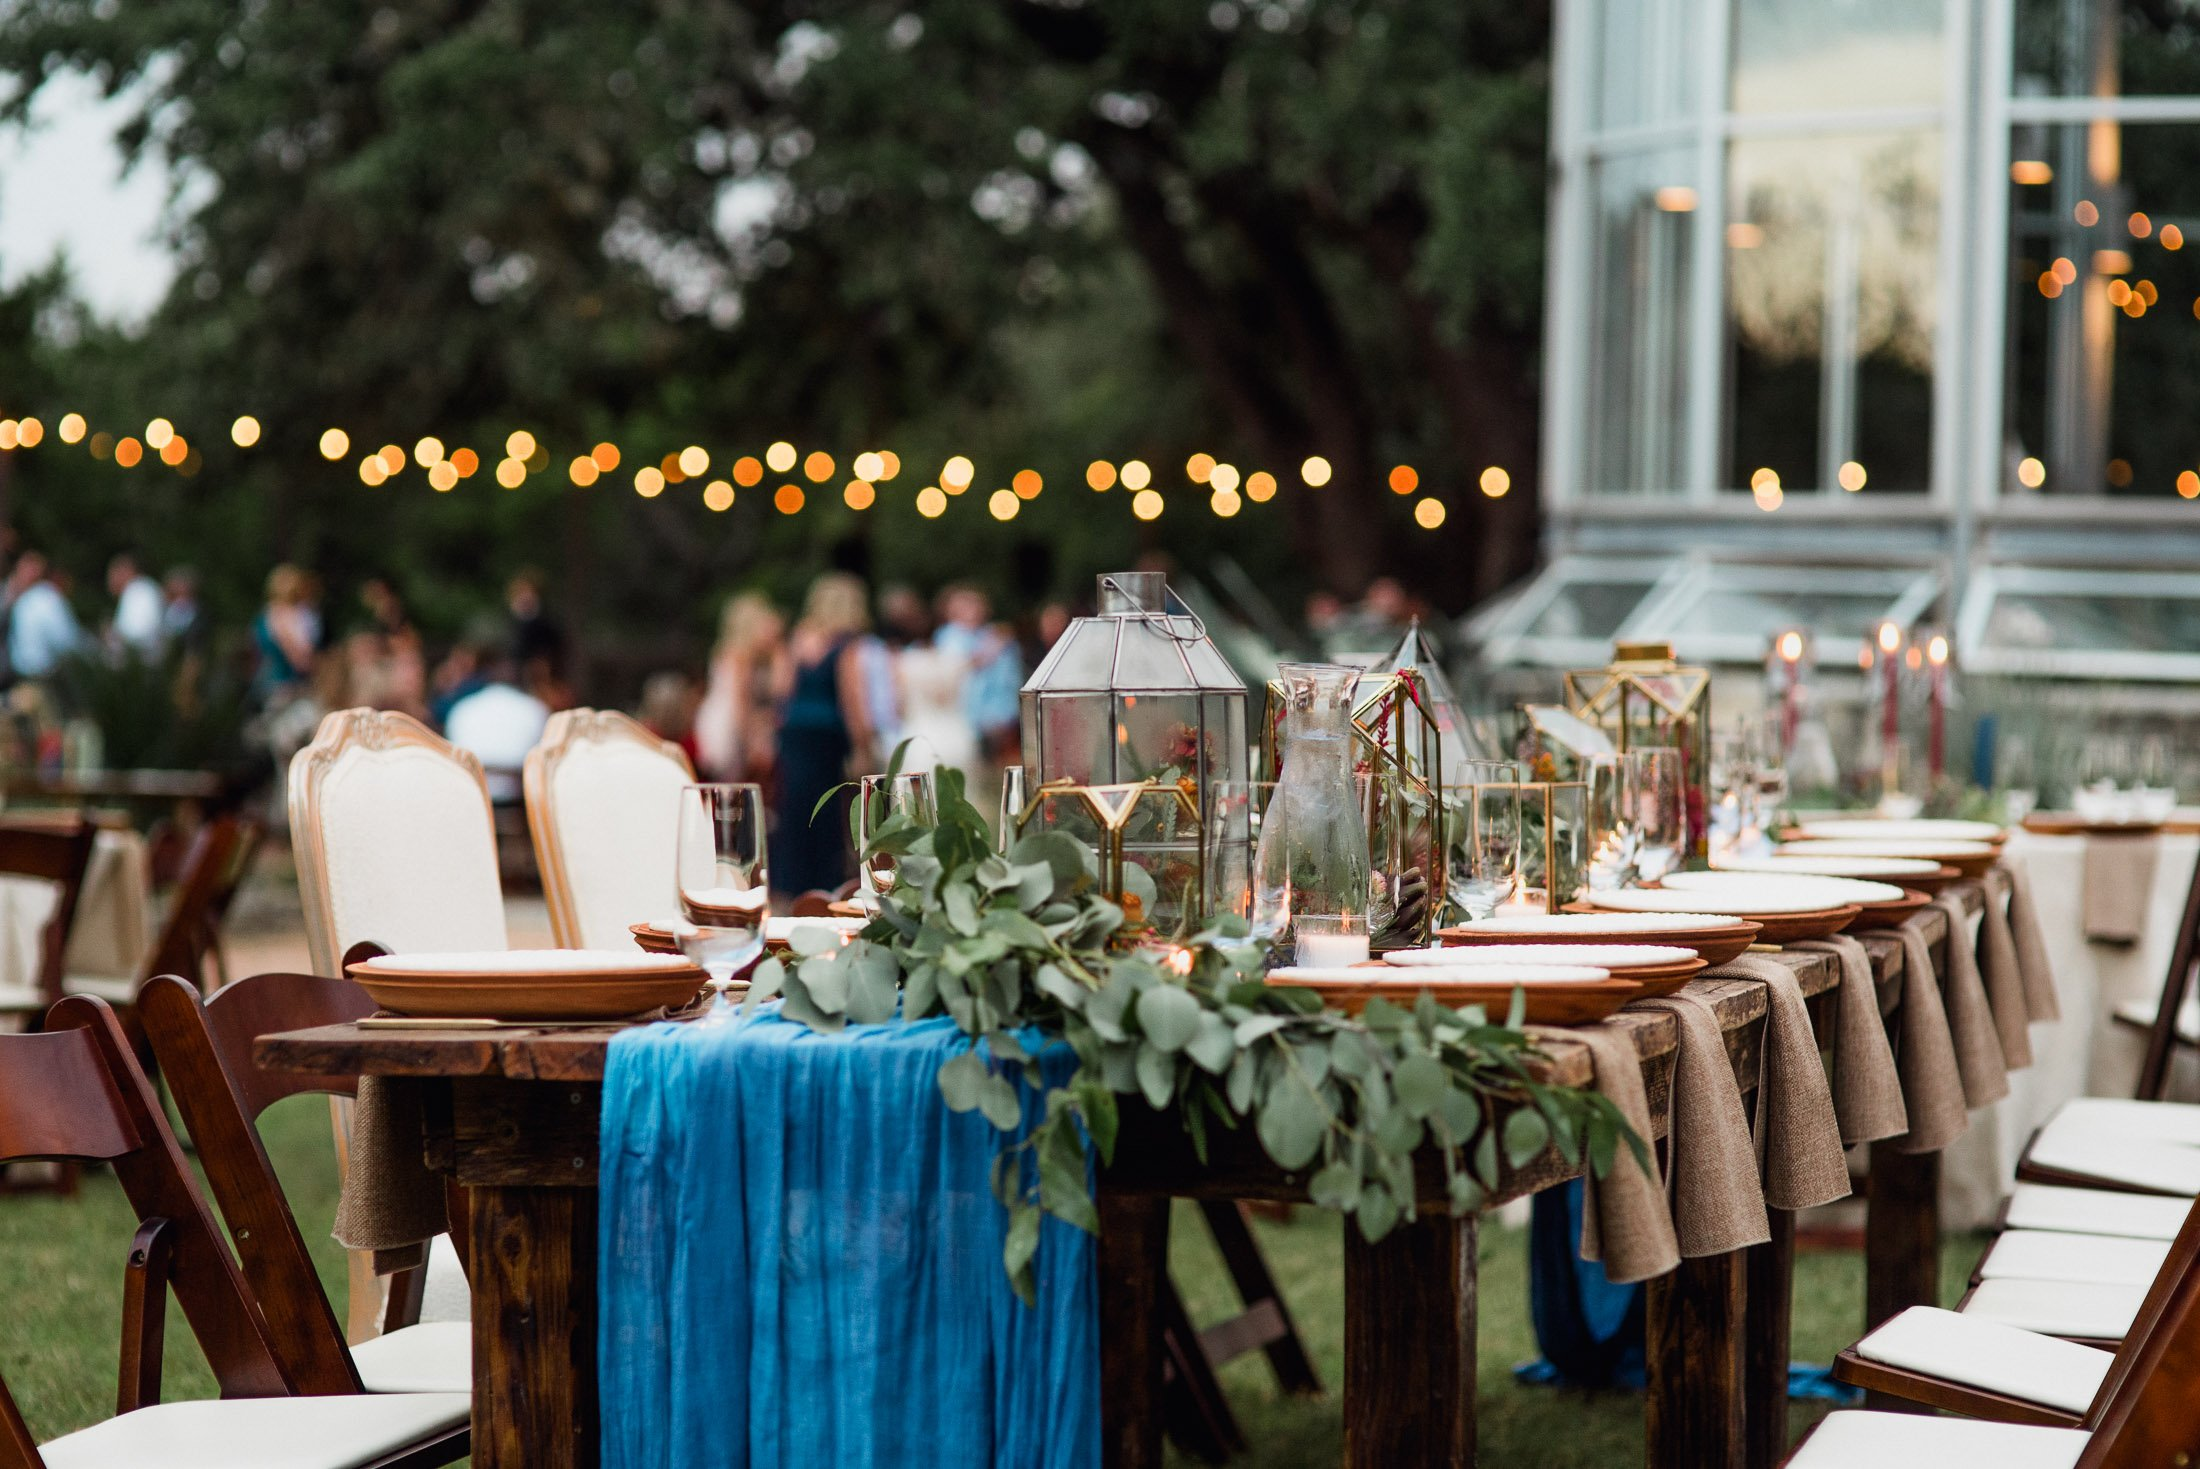 modern glass and cerulean blue table decor at an outdoor wedding in austin texas